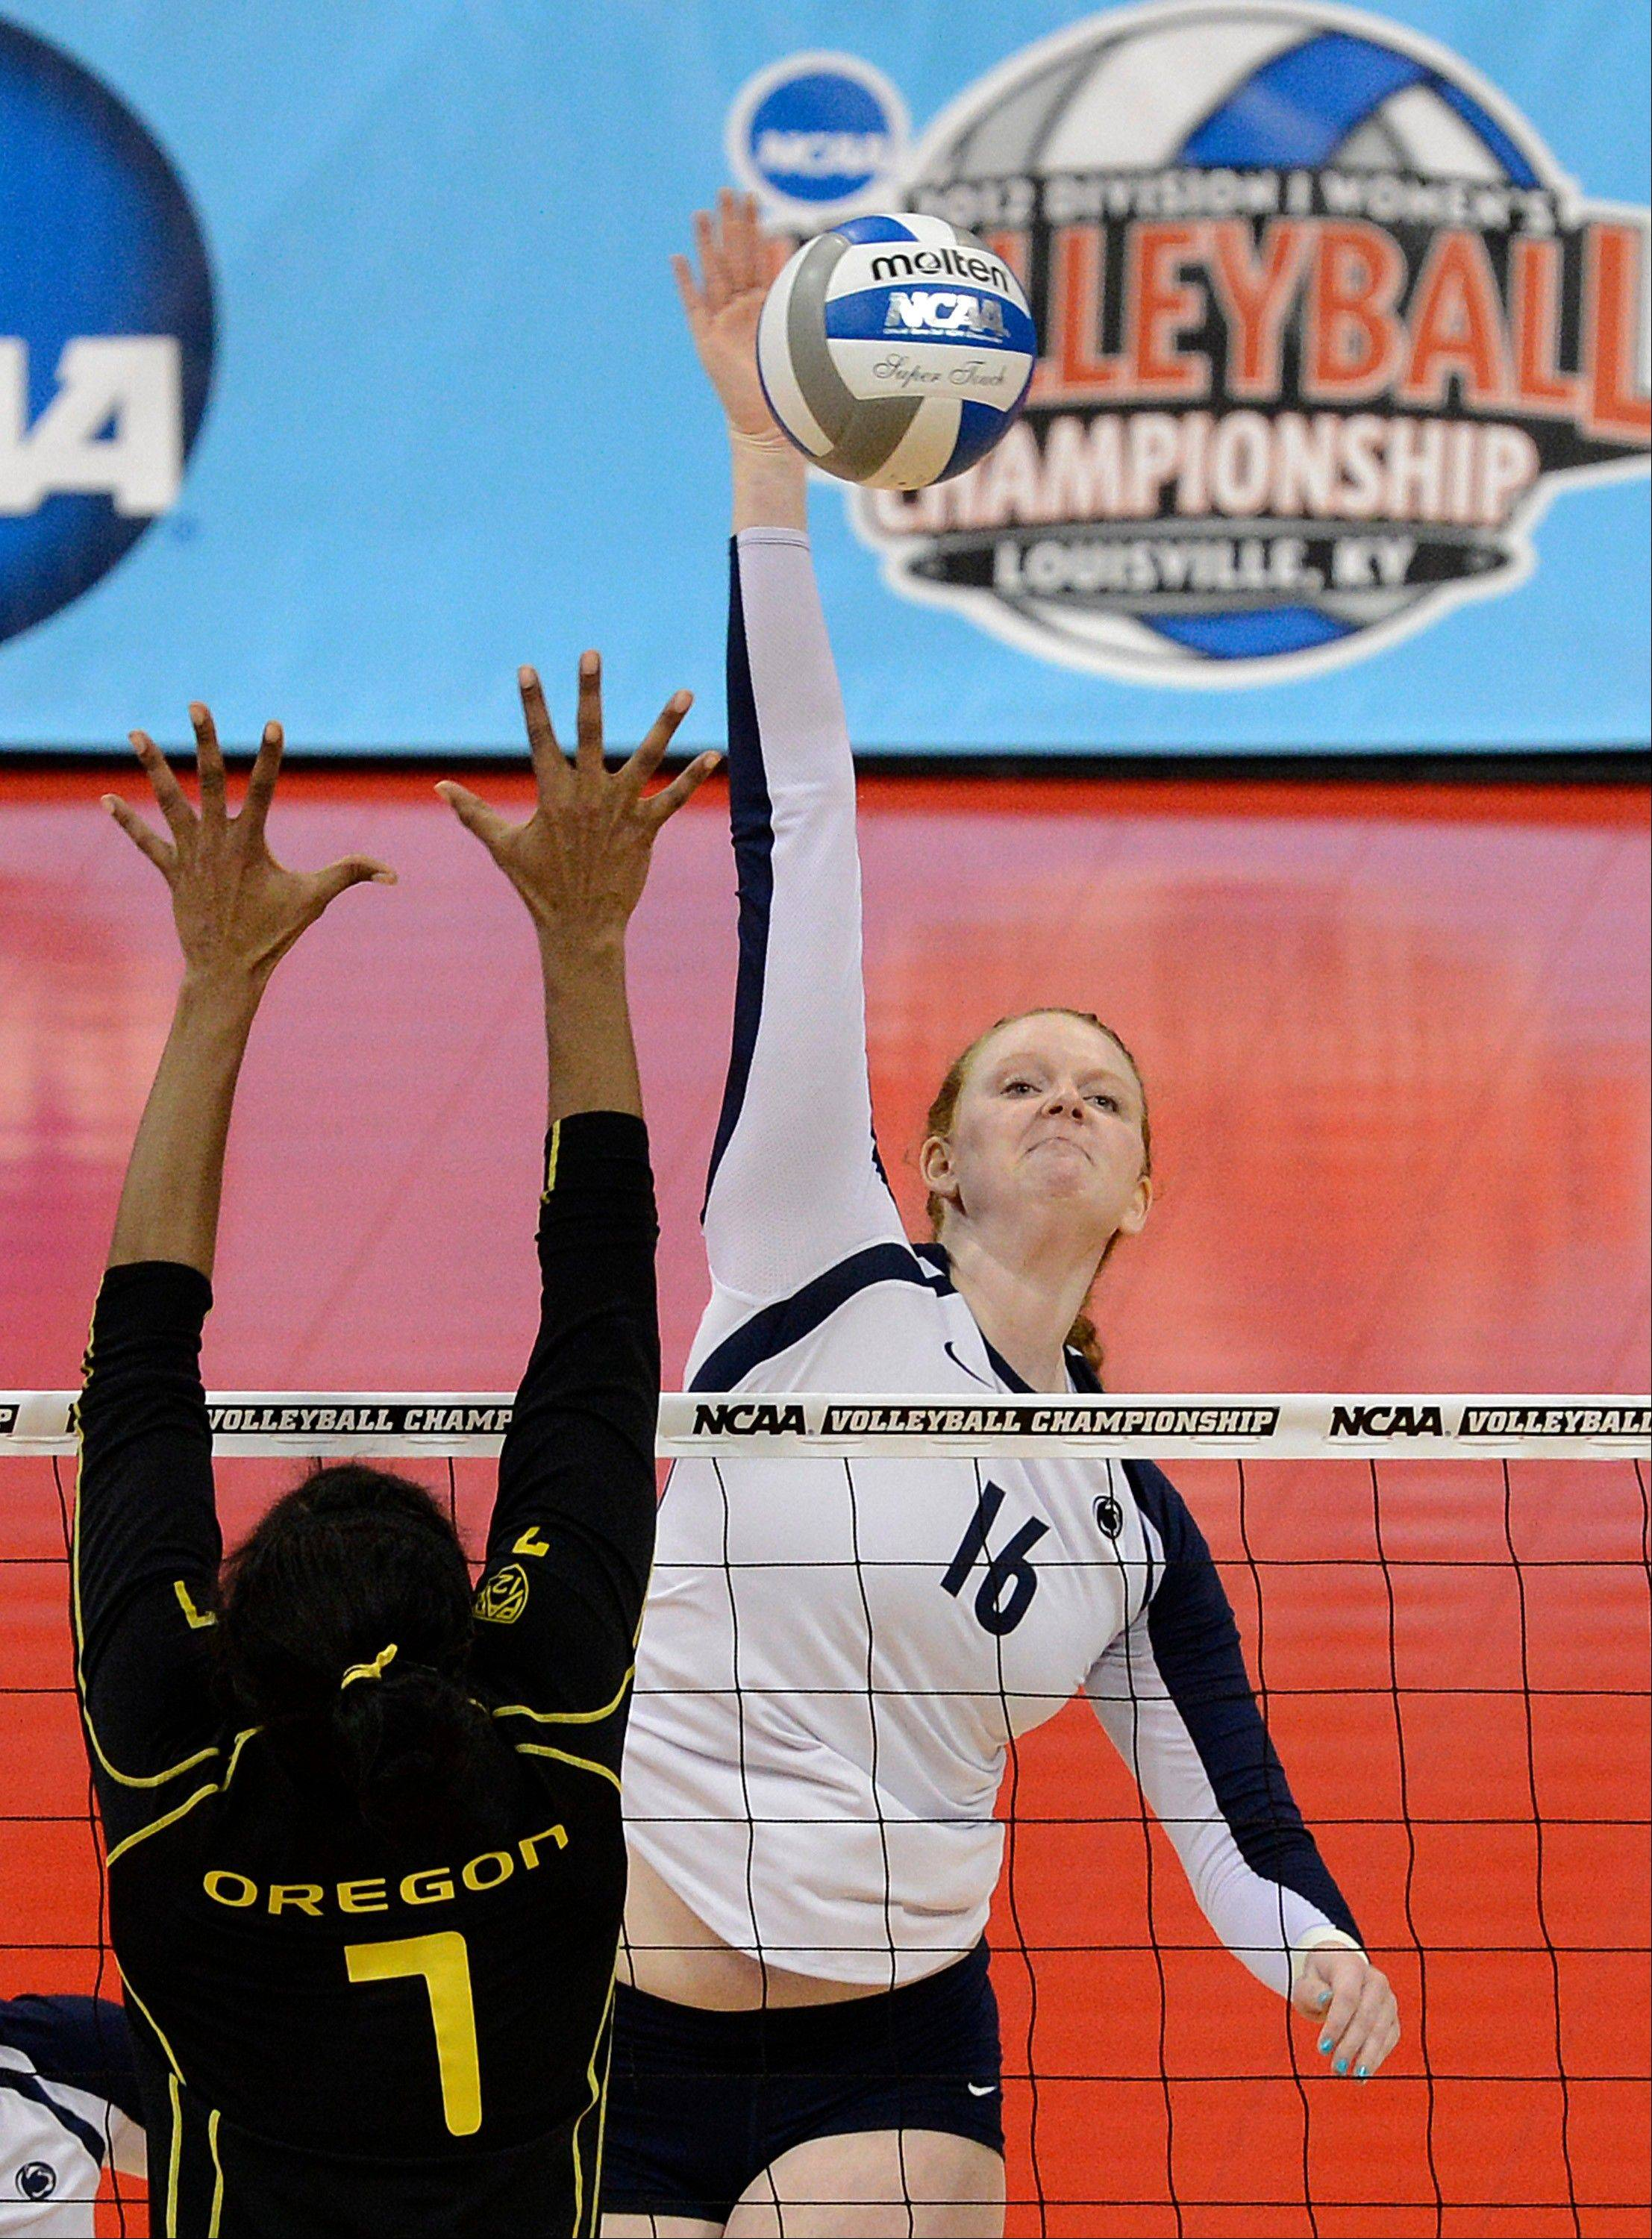 Katie Slay, right, and her Penn State teammates are no strangers to NCAA Tournament success in women's volleyball, having won four straight national titles beginning in 2007 and reaching the Final Four this season.